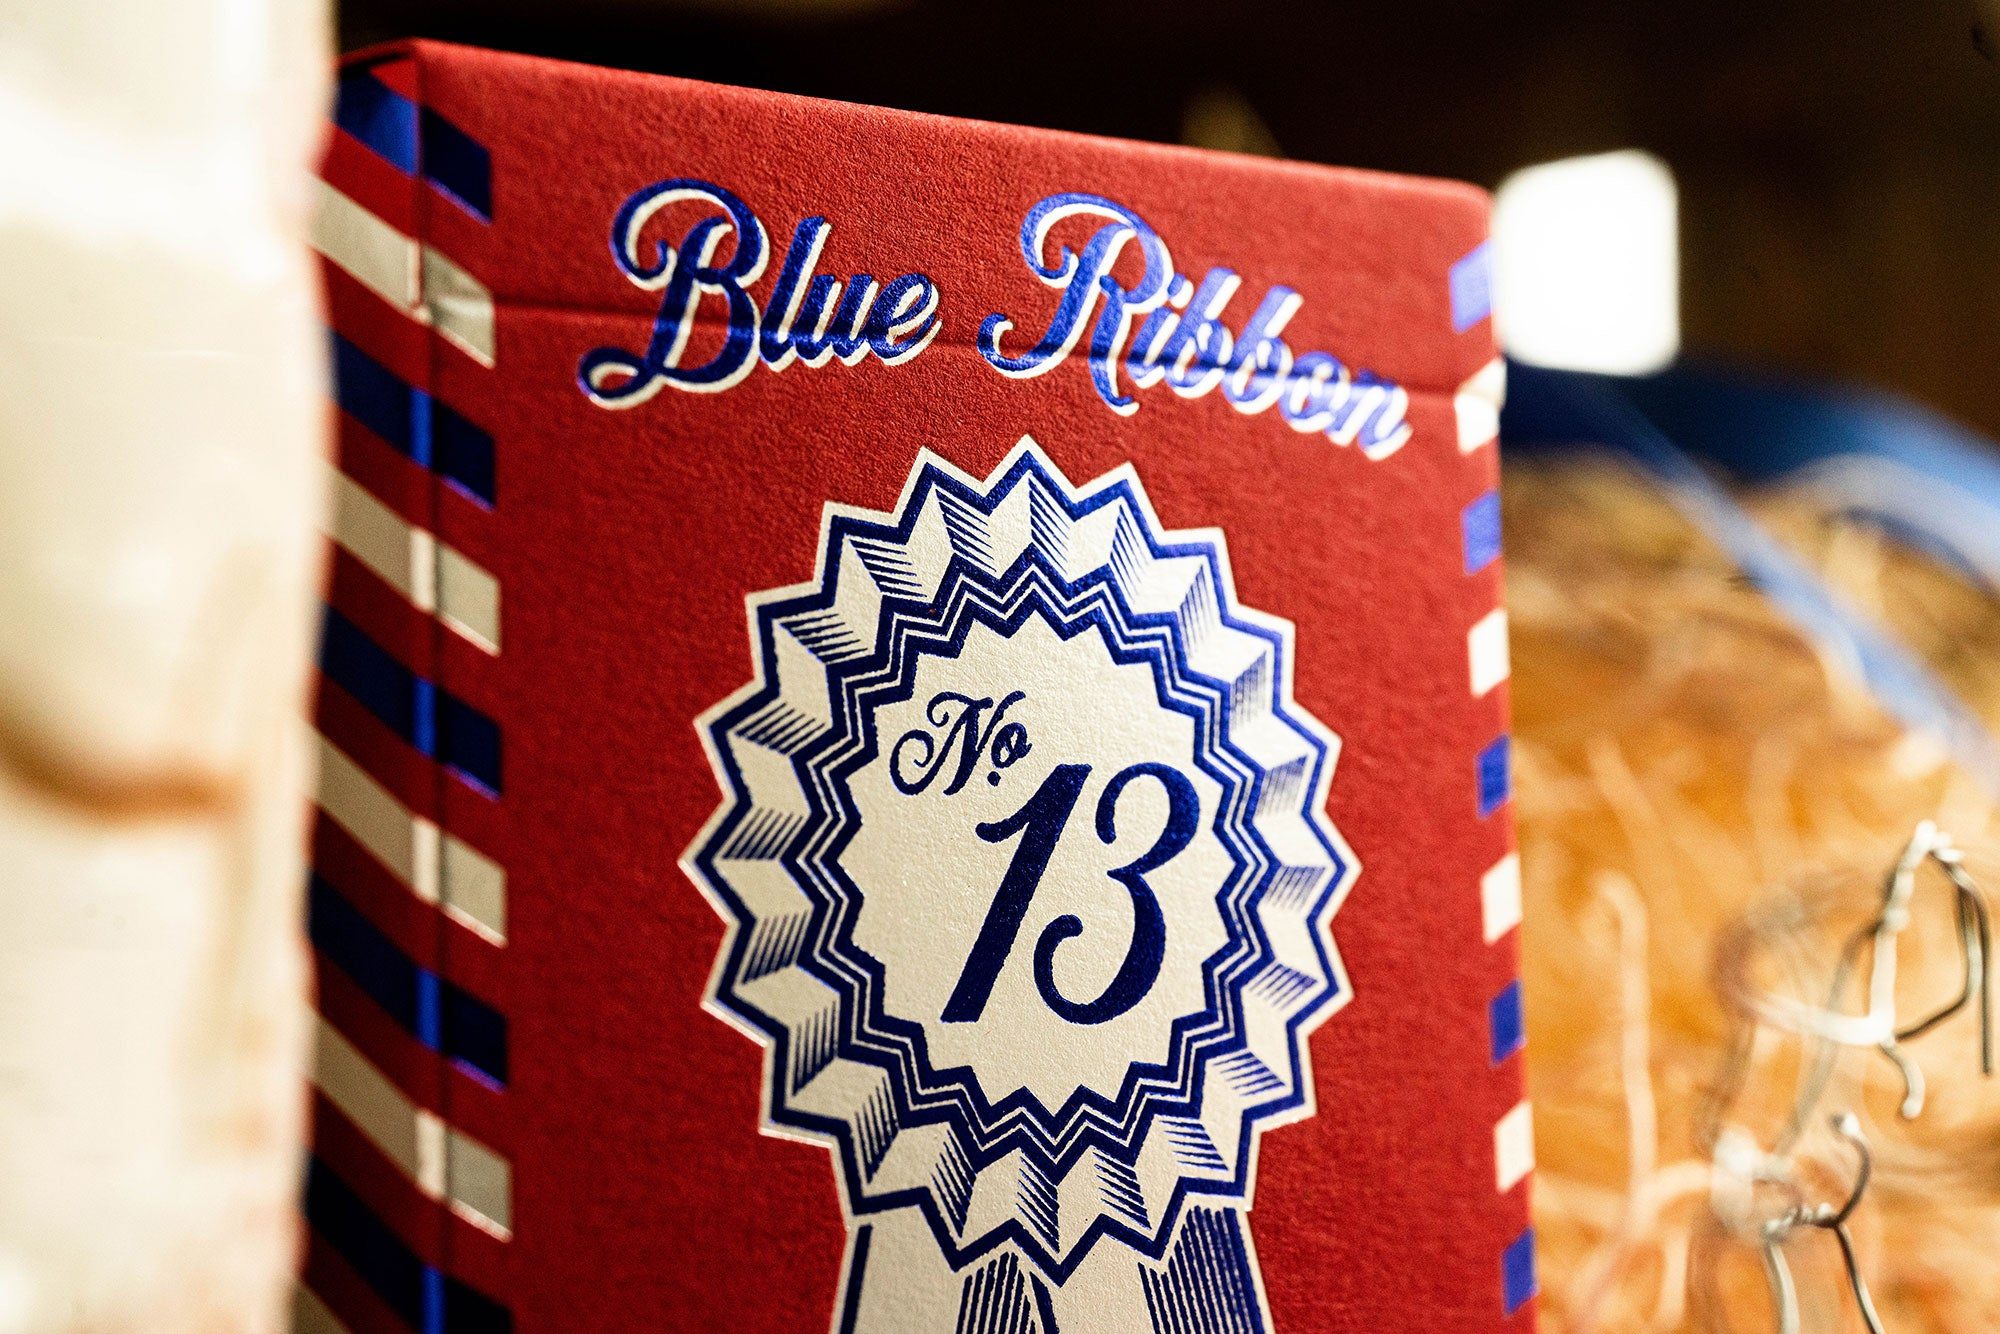 Blue Ribbon - Gilded Edition (Numbered)